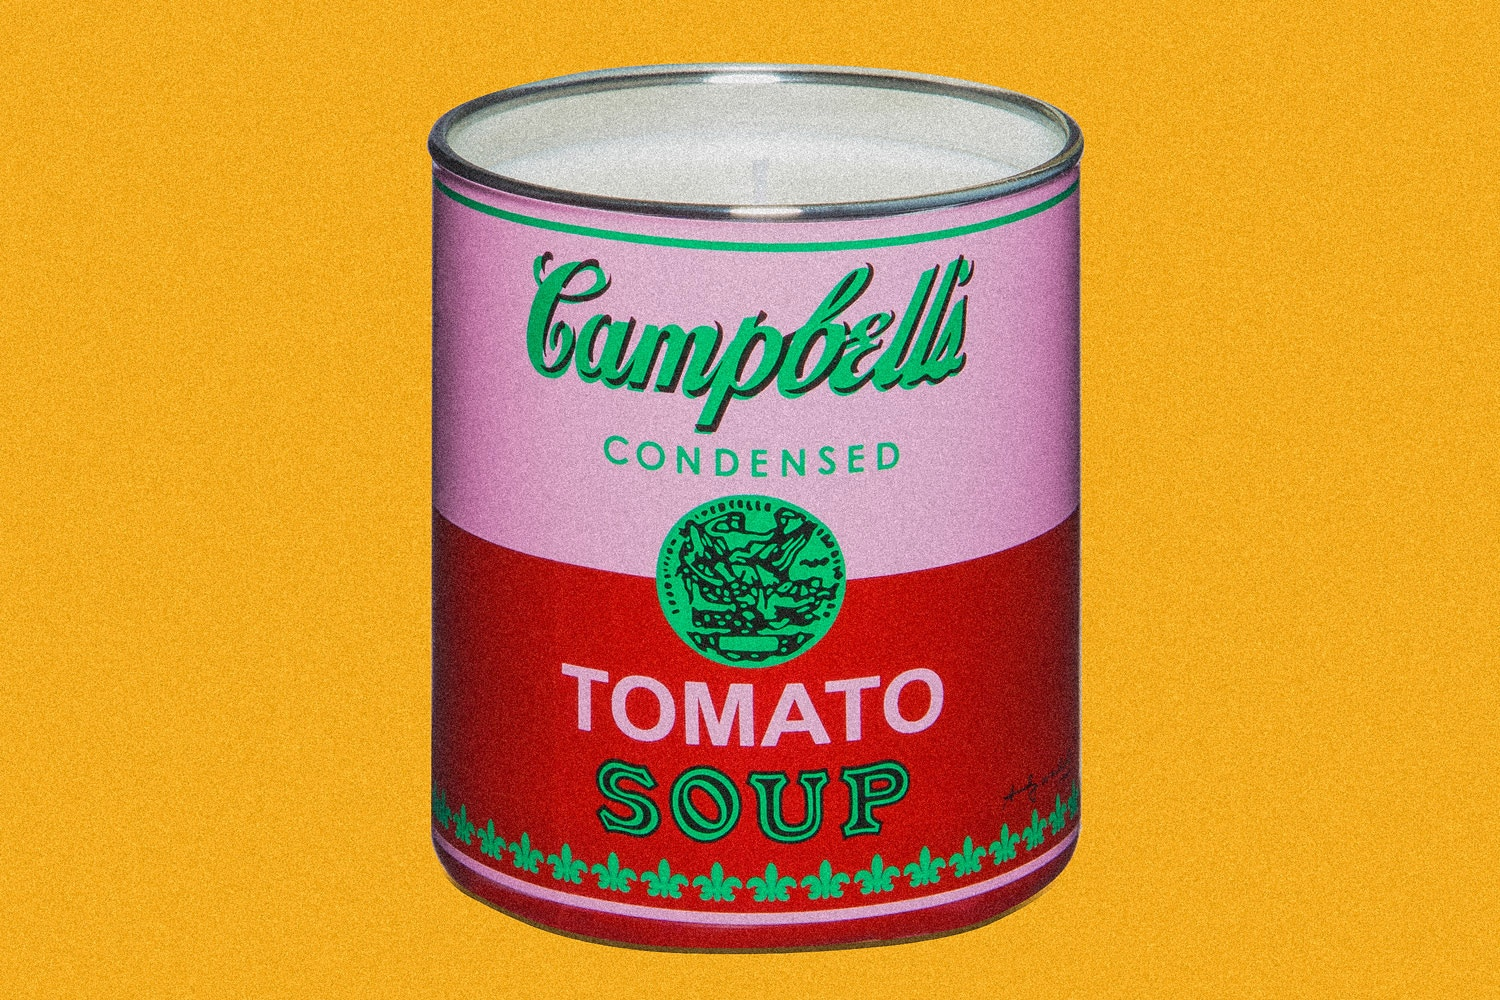 http_bae-hypebeast-comfiles201712ligne-blanche-andy-warhol-keith-haring-jean-michel-basquiat-candle-1